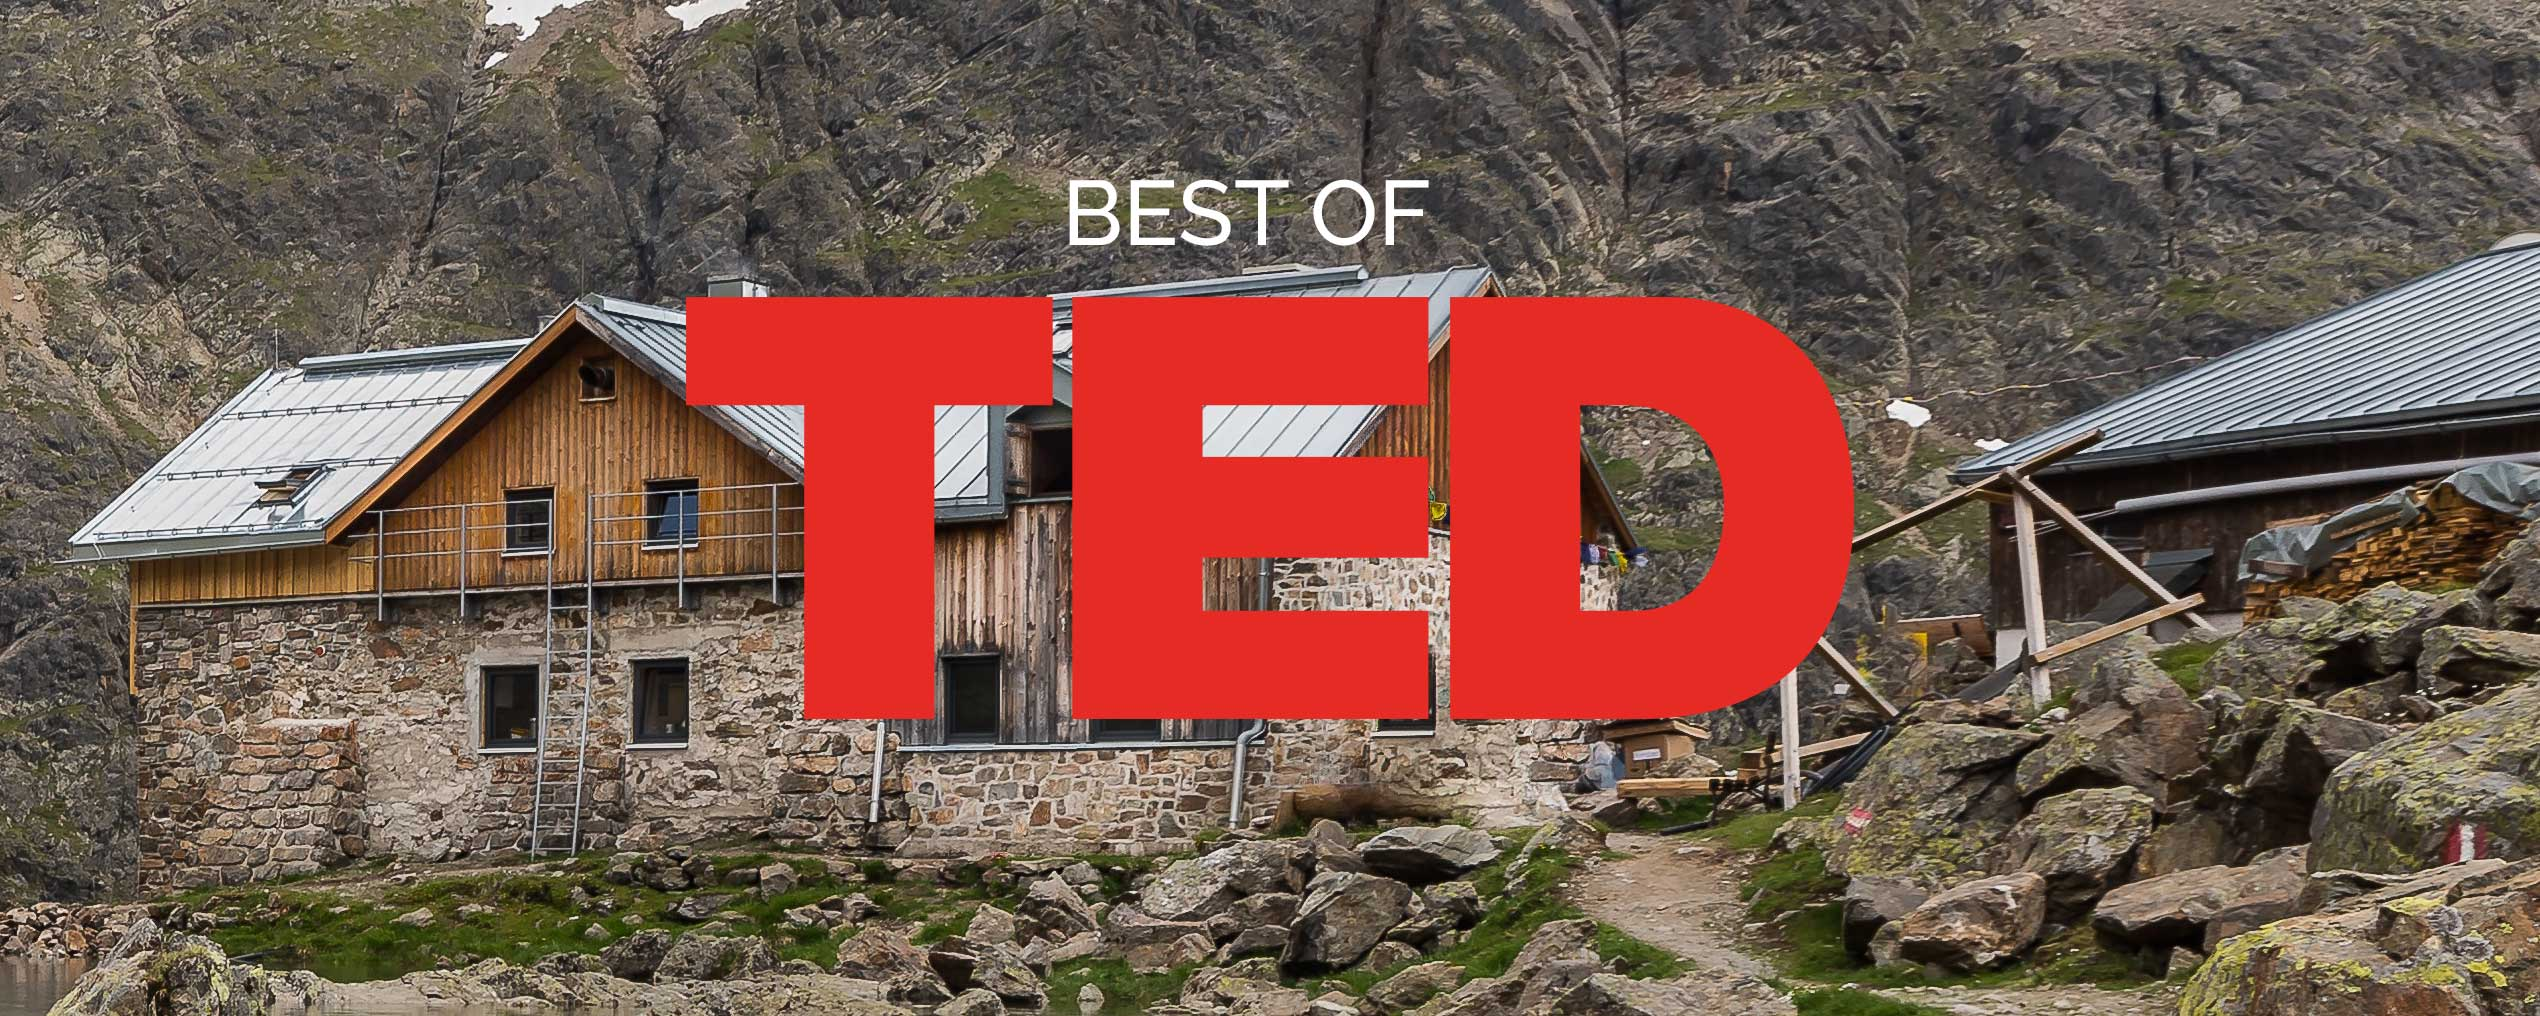 TED Talks Blog Post